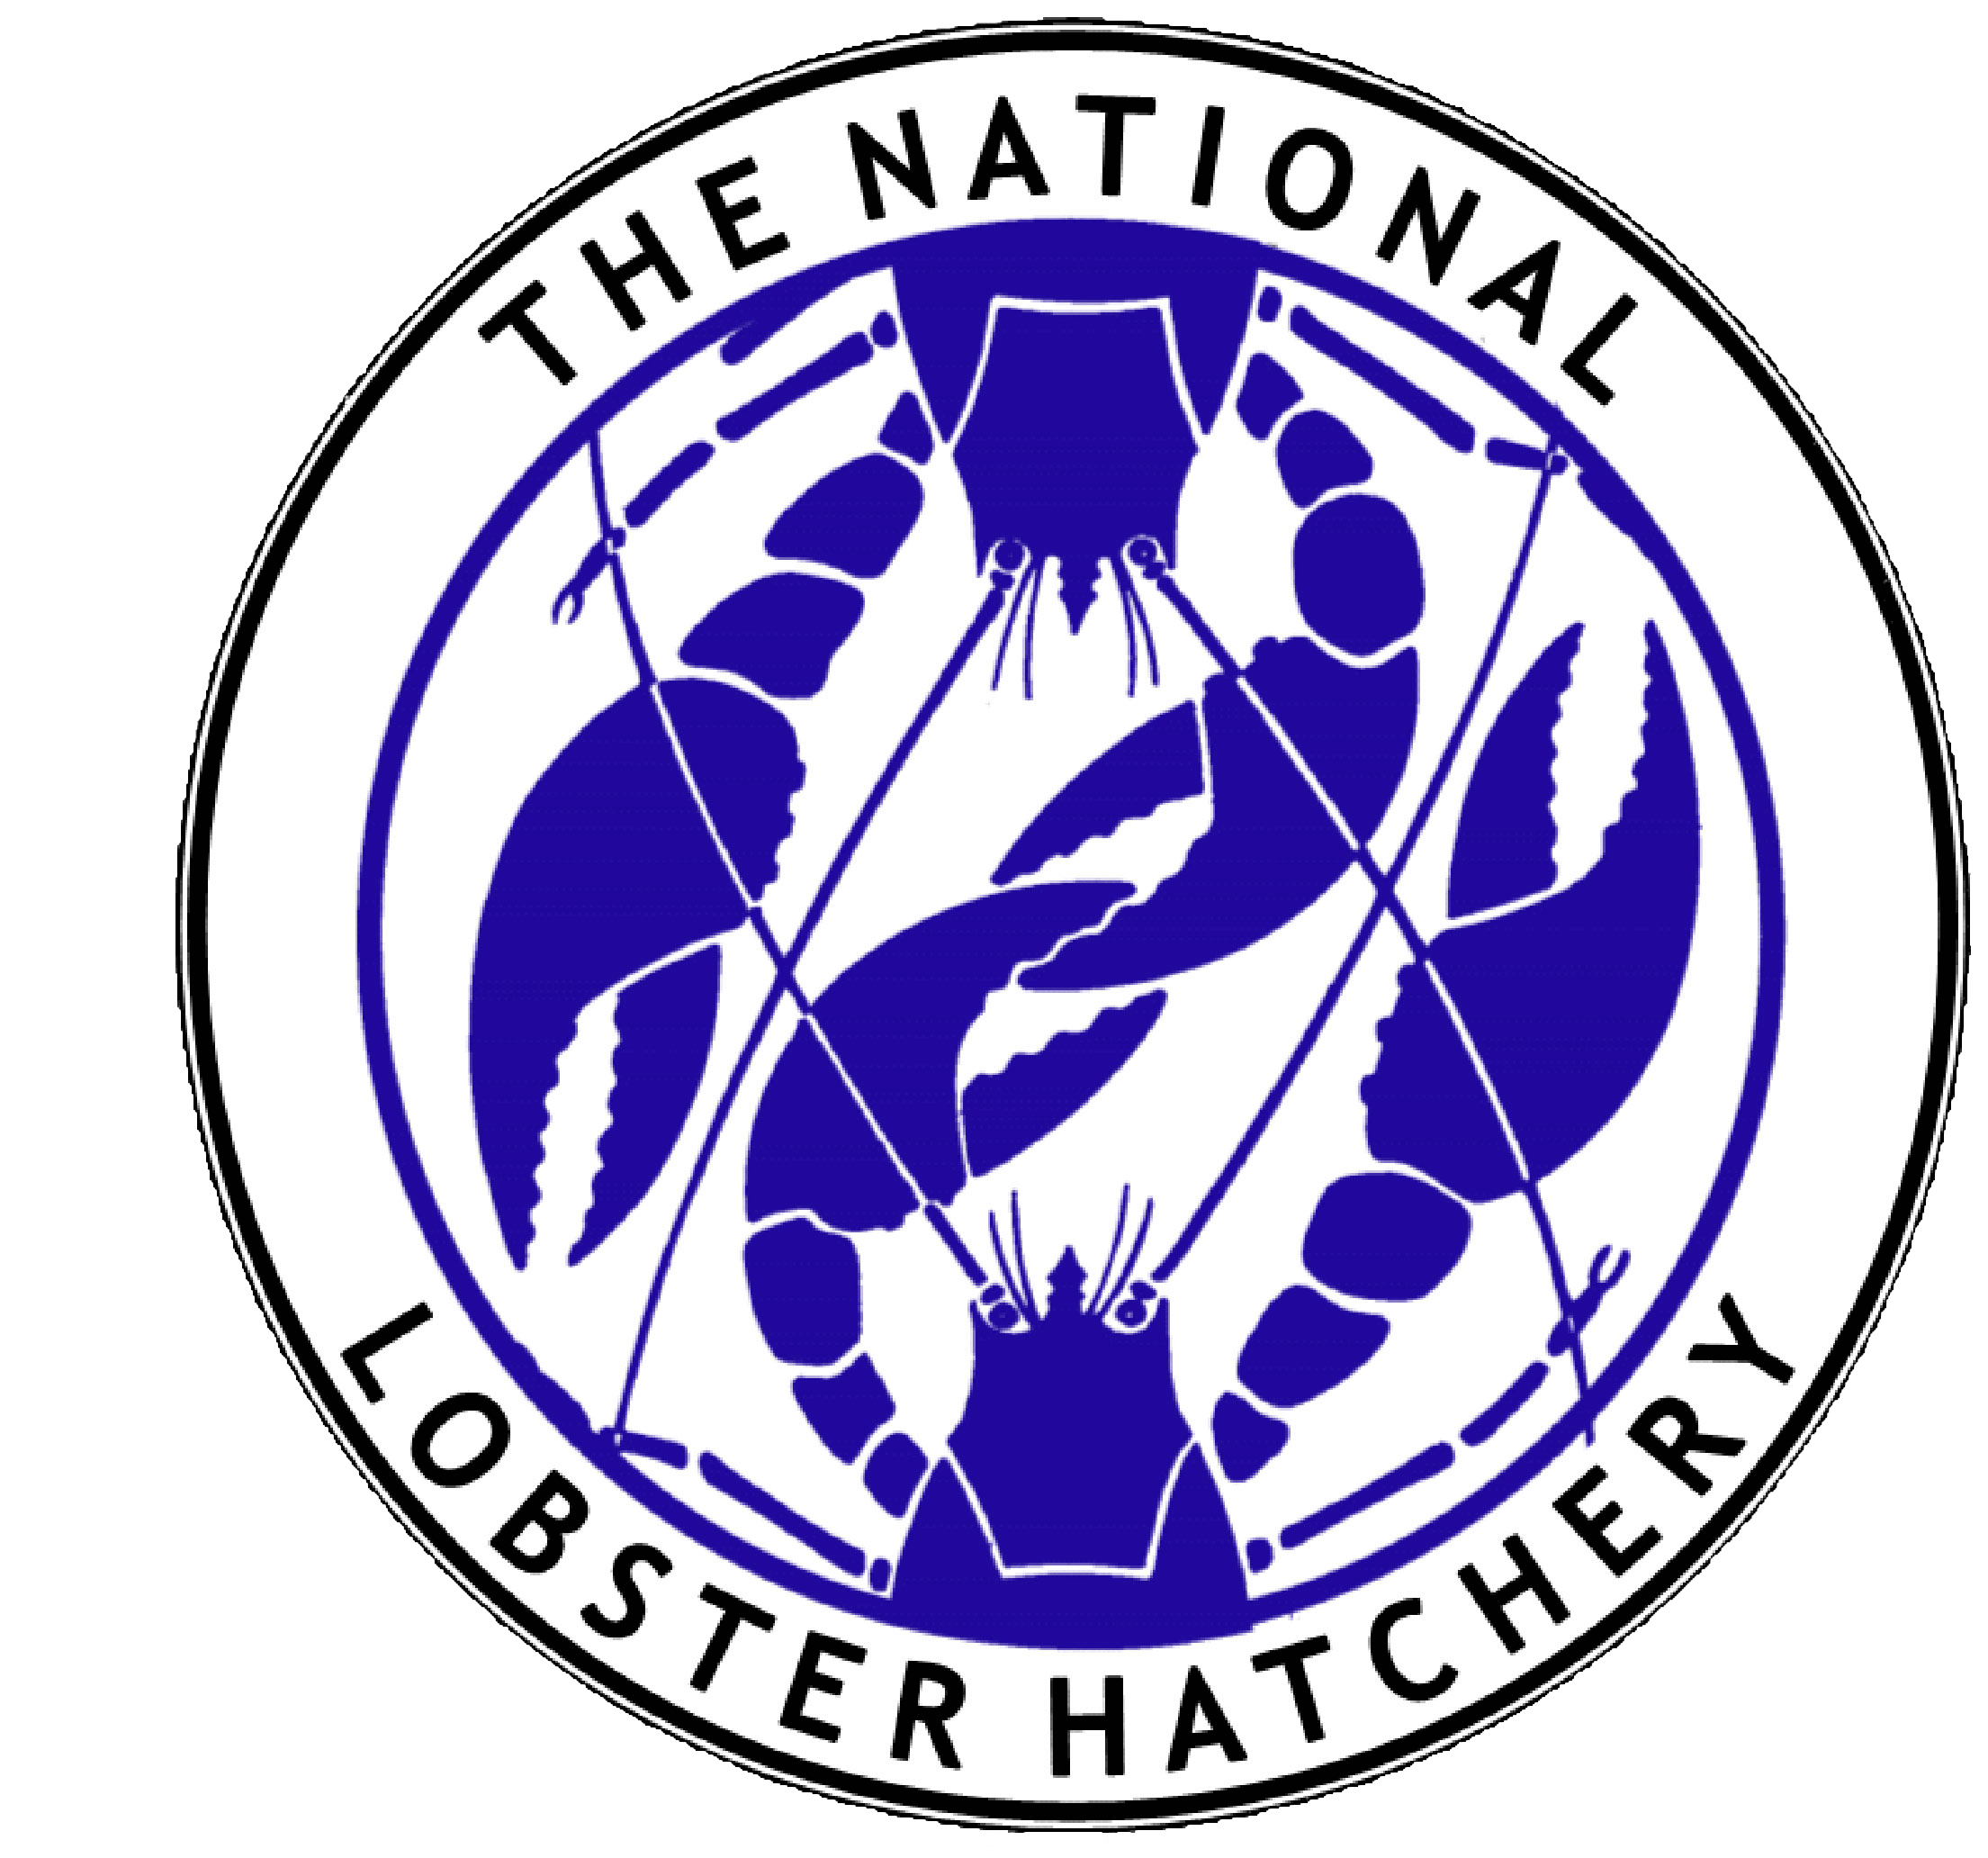 The National Lobster Hatchery and Simply Oysters